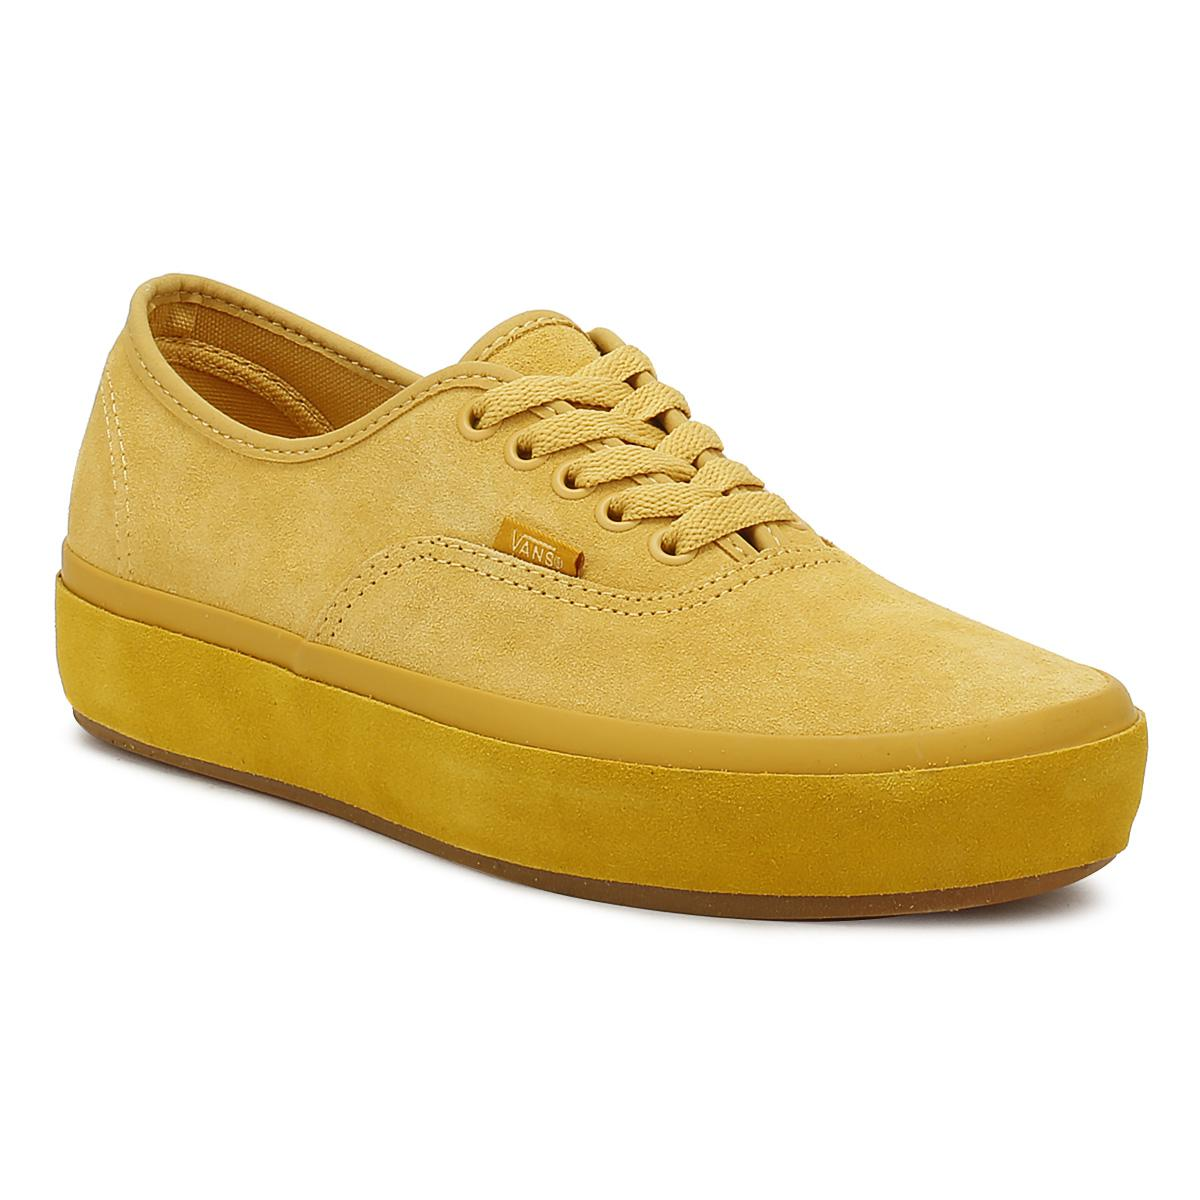 00ae64480f Vans Womens Ochre Yellow Authentic Platform Trainers in Yellow - Lyst